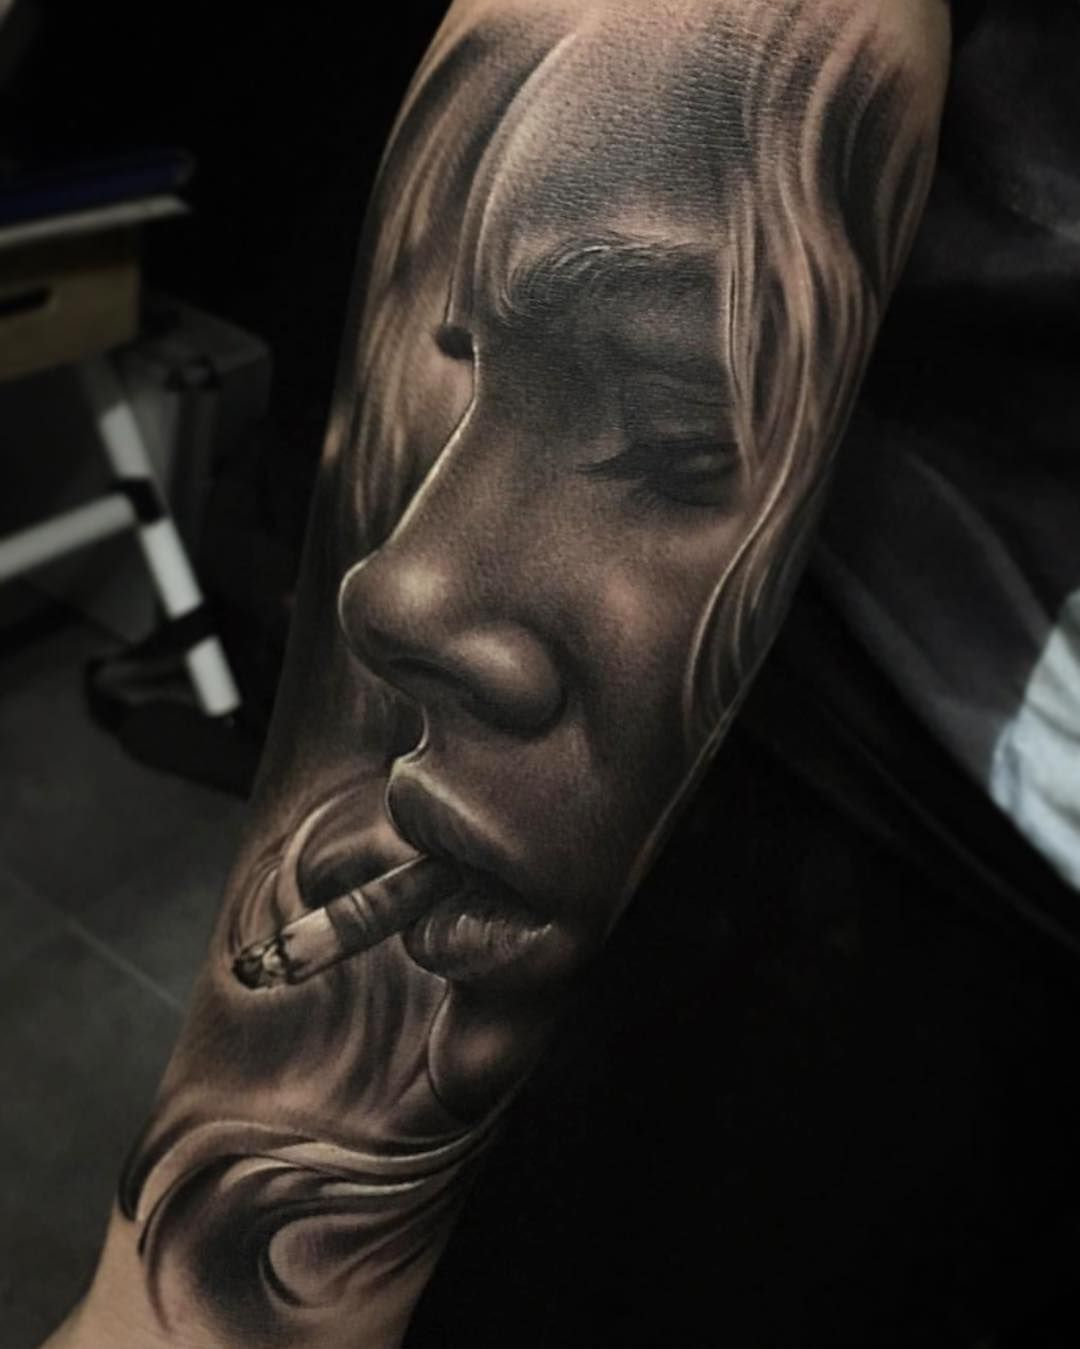 Tattoo By Fred Thomas Fredytattoos Exotictattoomurica Realism Surreal Realist Black And Grey Tattoos Black And Grey Tattoos Sleeve Realistic Tattoo Sleeve